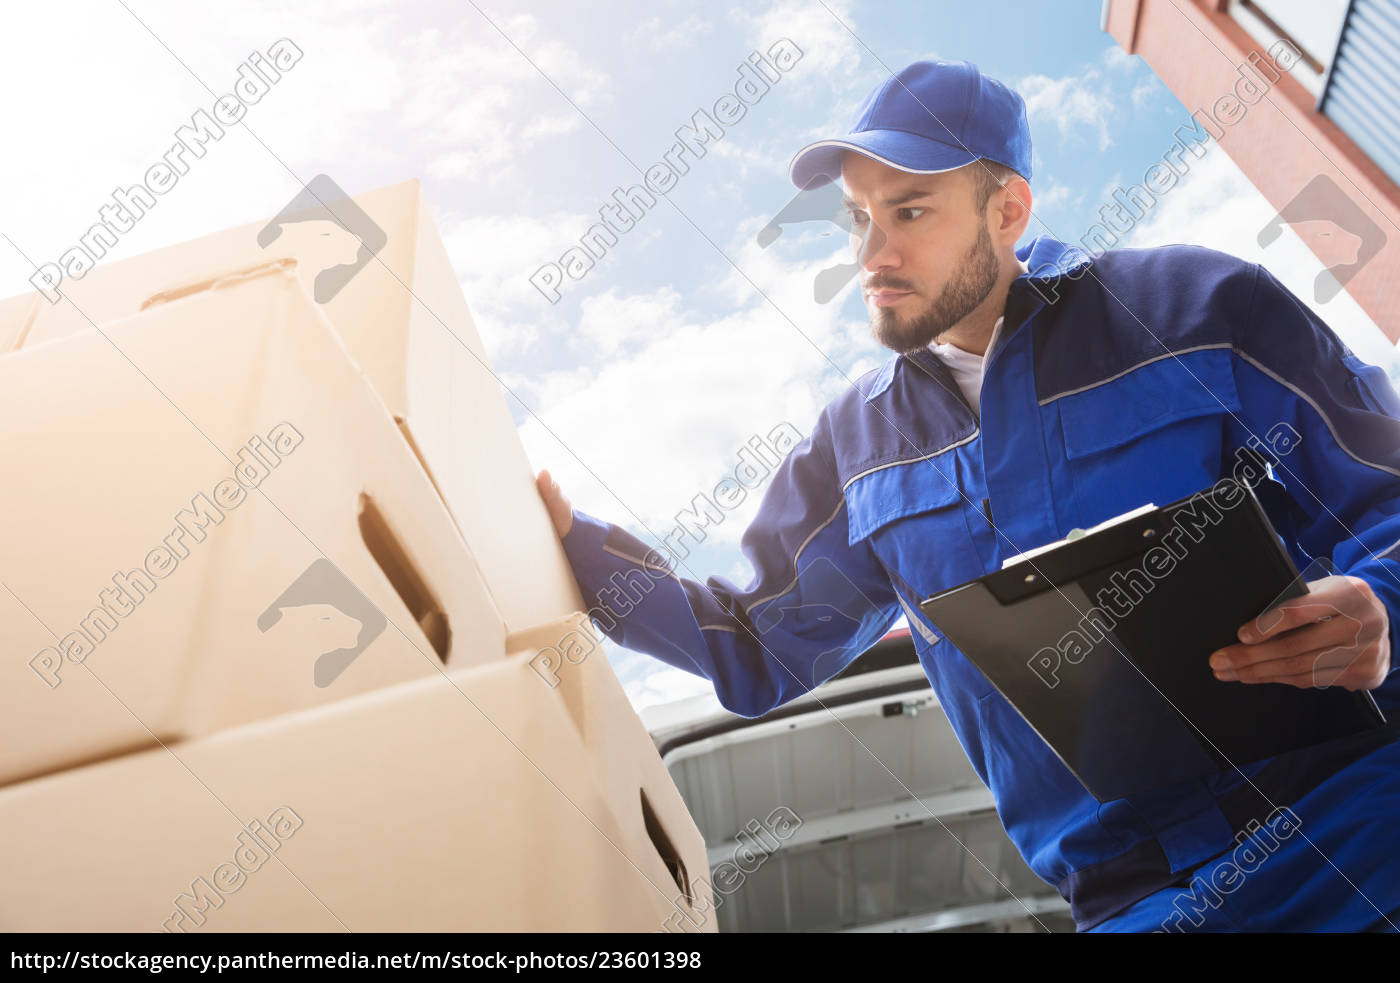 male, worker, standing, near, cardboard, box - 23601398